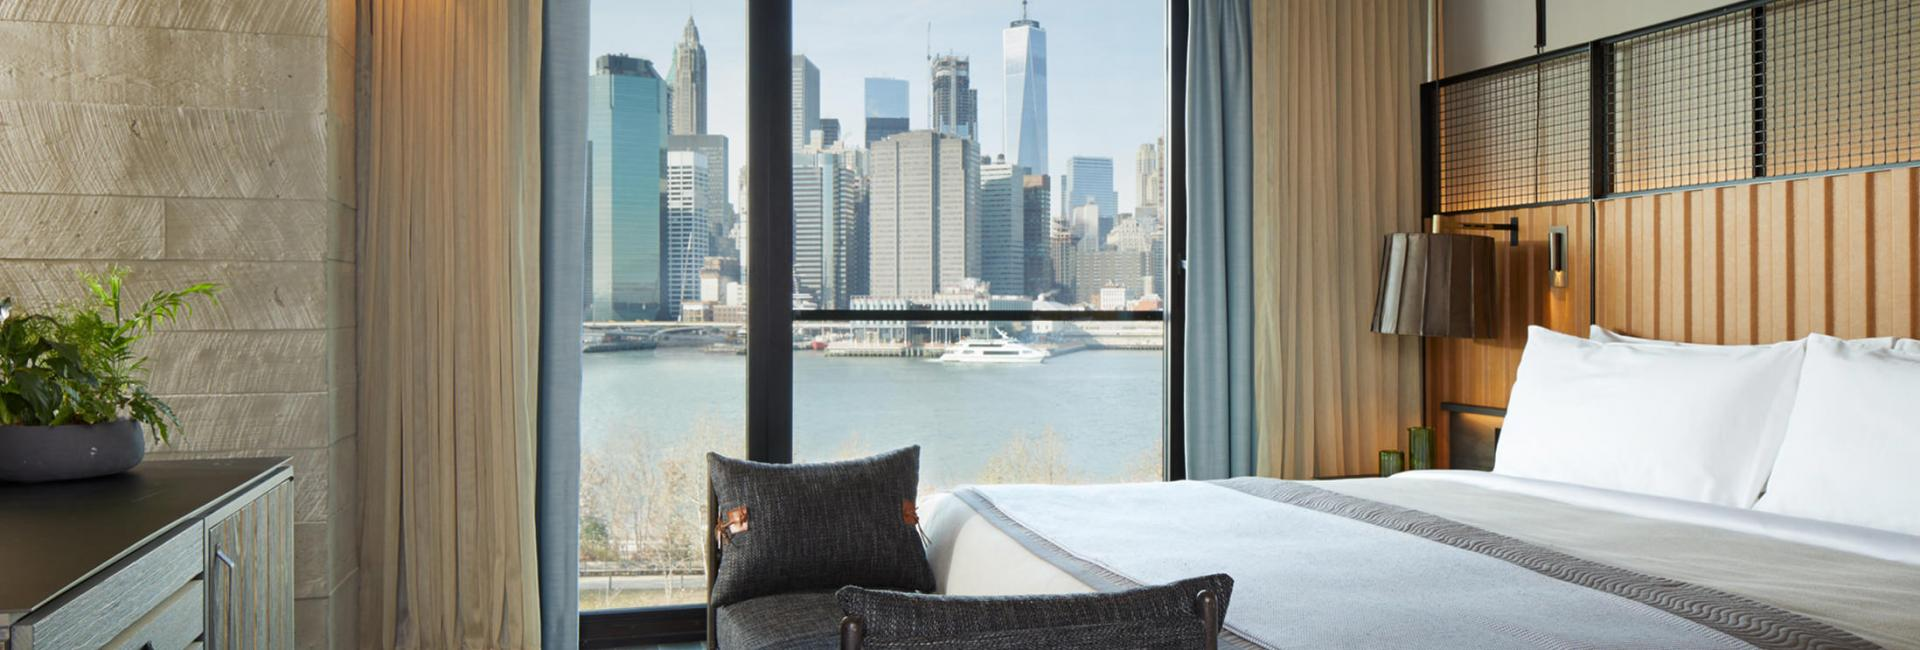 Skyline suite at 1 Hotel Brooklyn Bridge with view of NYC skyline